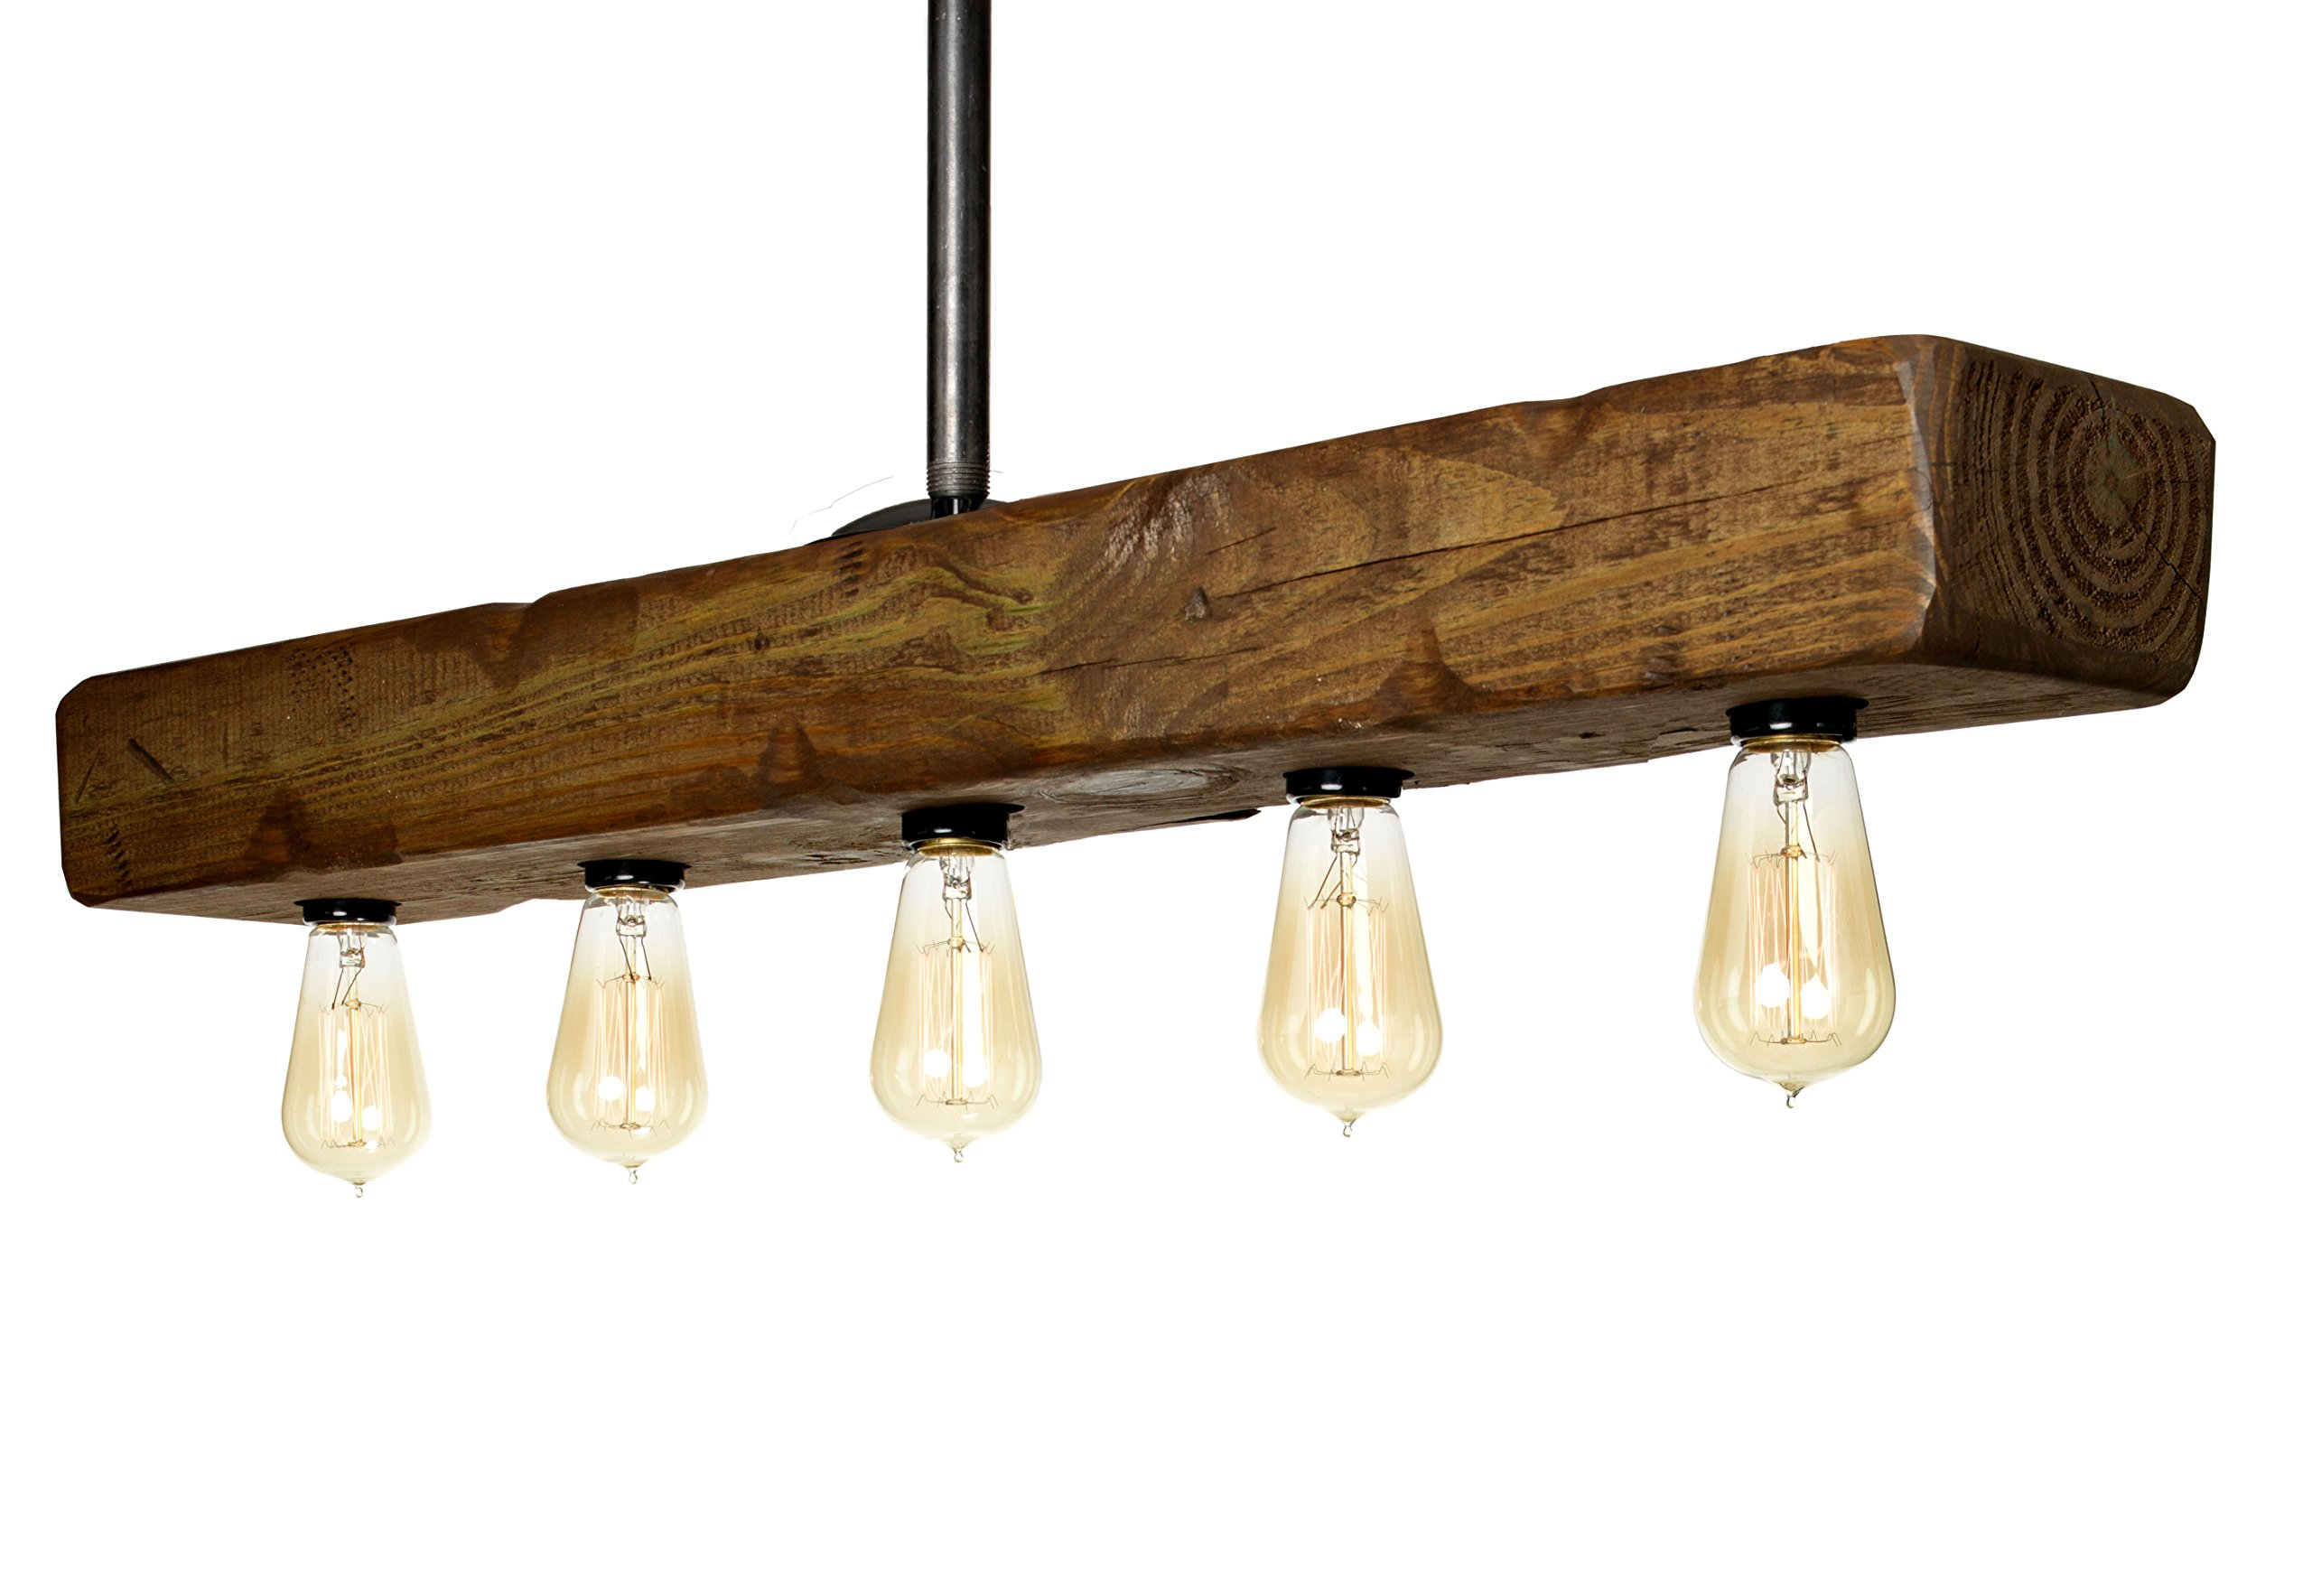 Farmhouse Style Distressed Wood Light Fixture - Recessed Wooden Beam Rustic Decor Chandelier Lighting (5 Light) by Barrister & Joiner Lighting